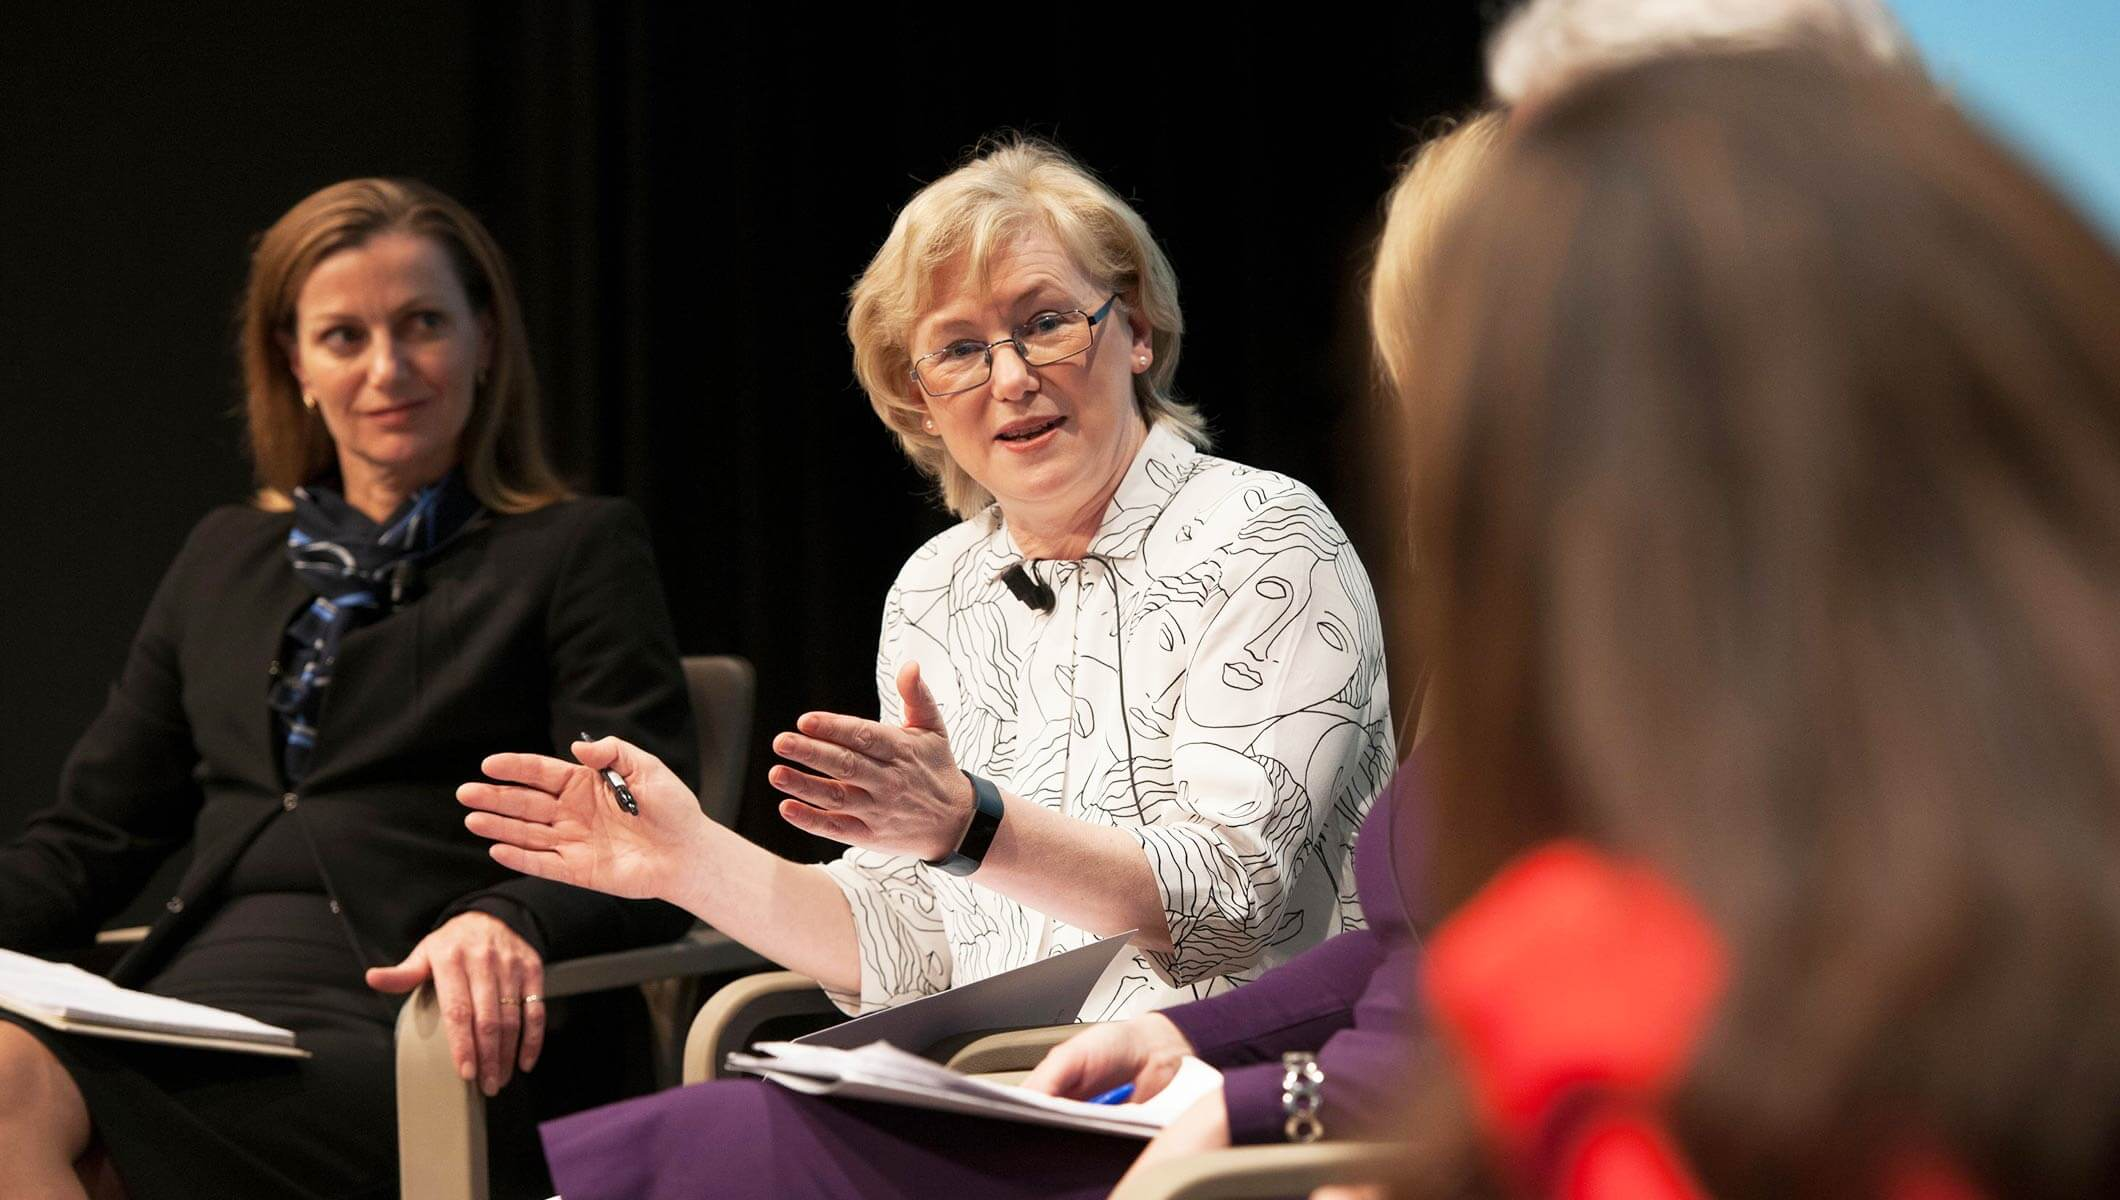 """Barbara Slater: """"Women entering the Sports Industry have role models now"""""""